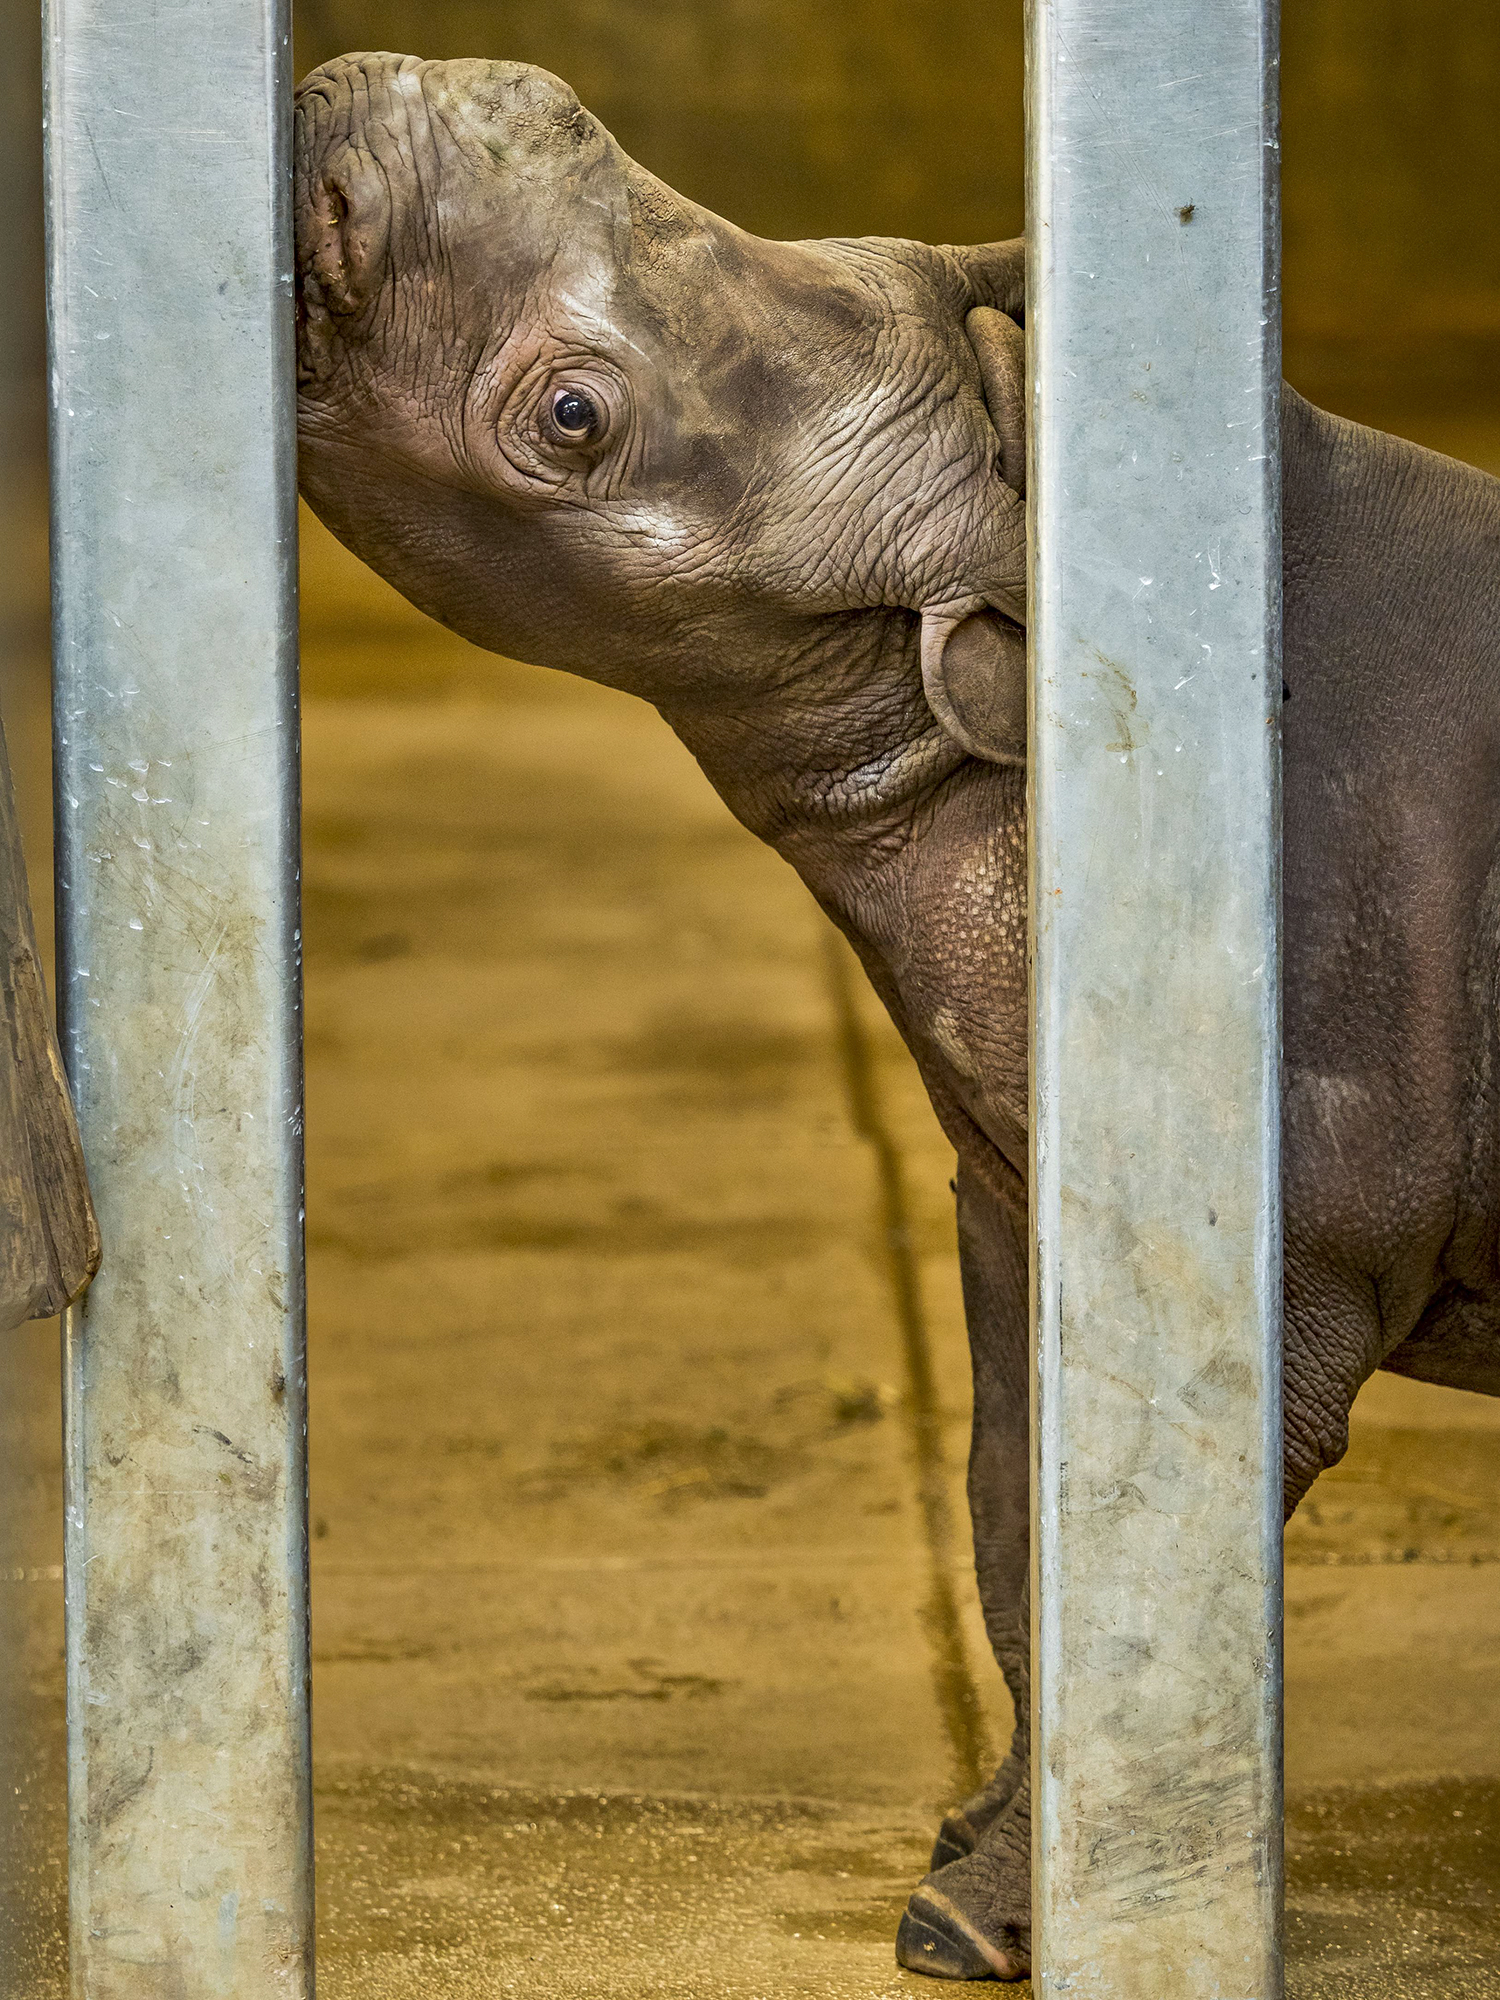 Baby Rhinoceros Goes on Display in Des Moines